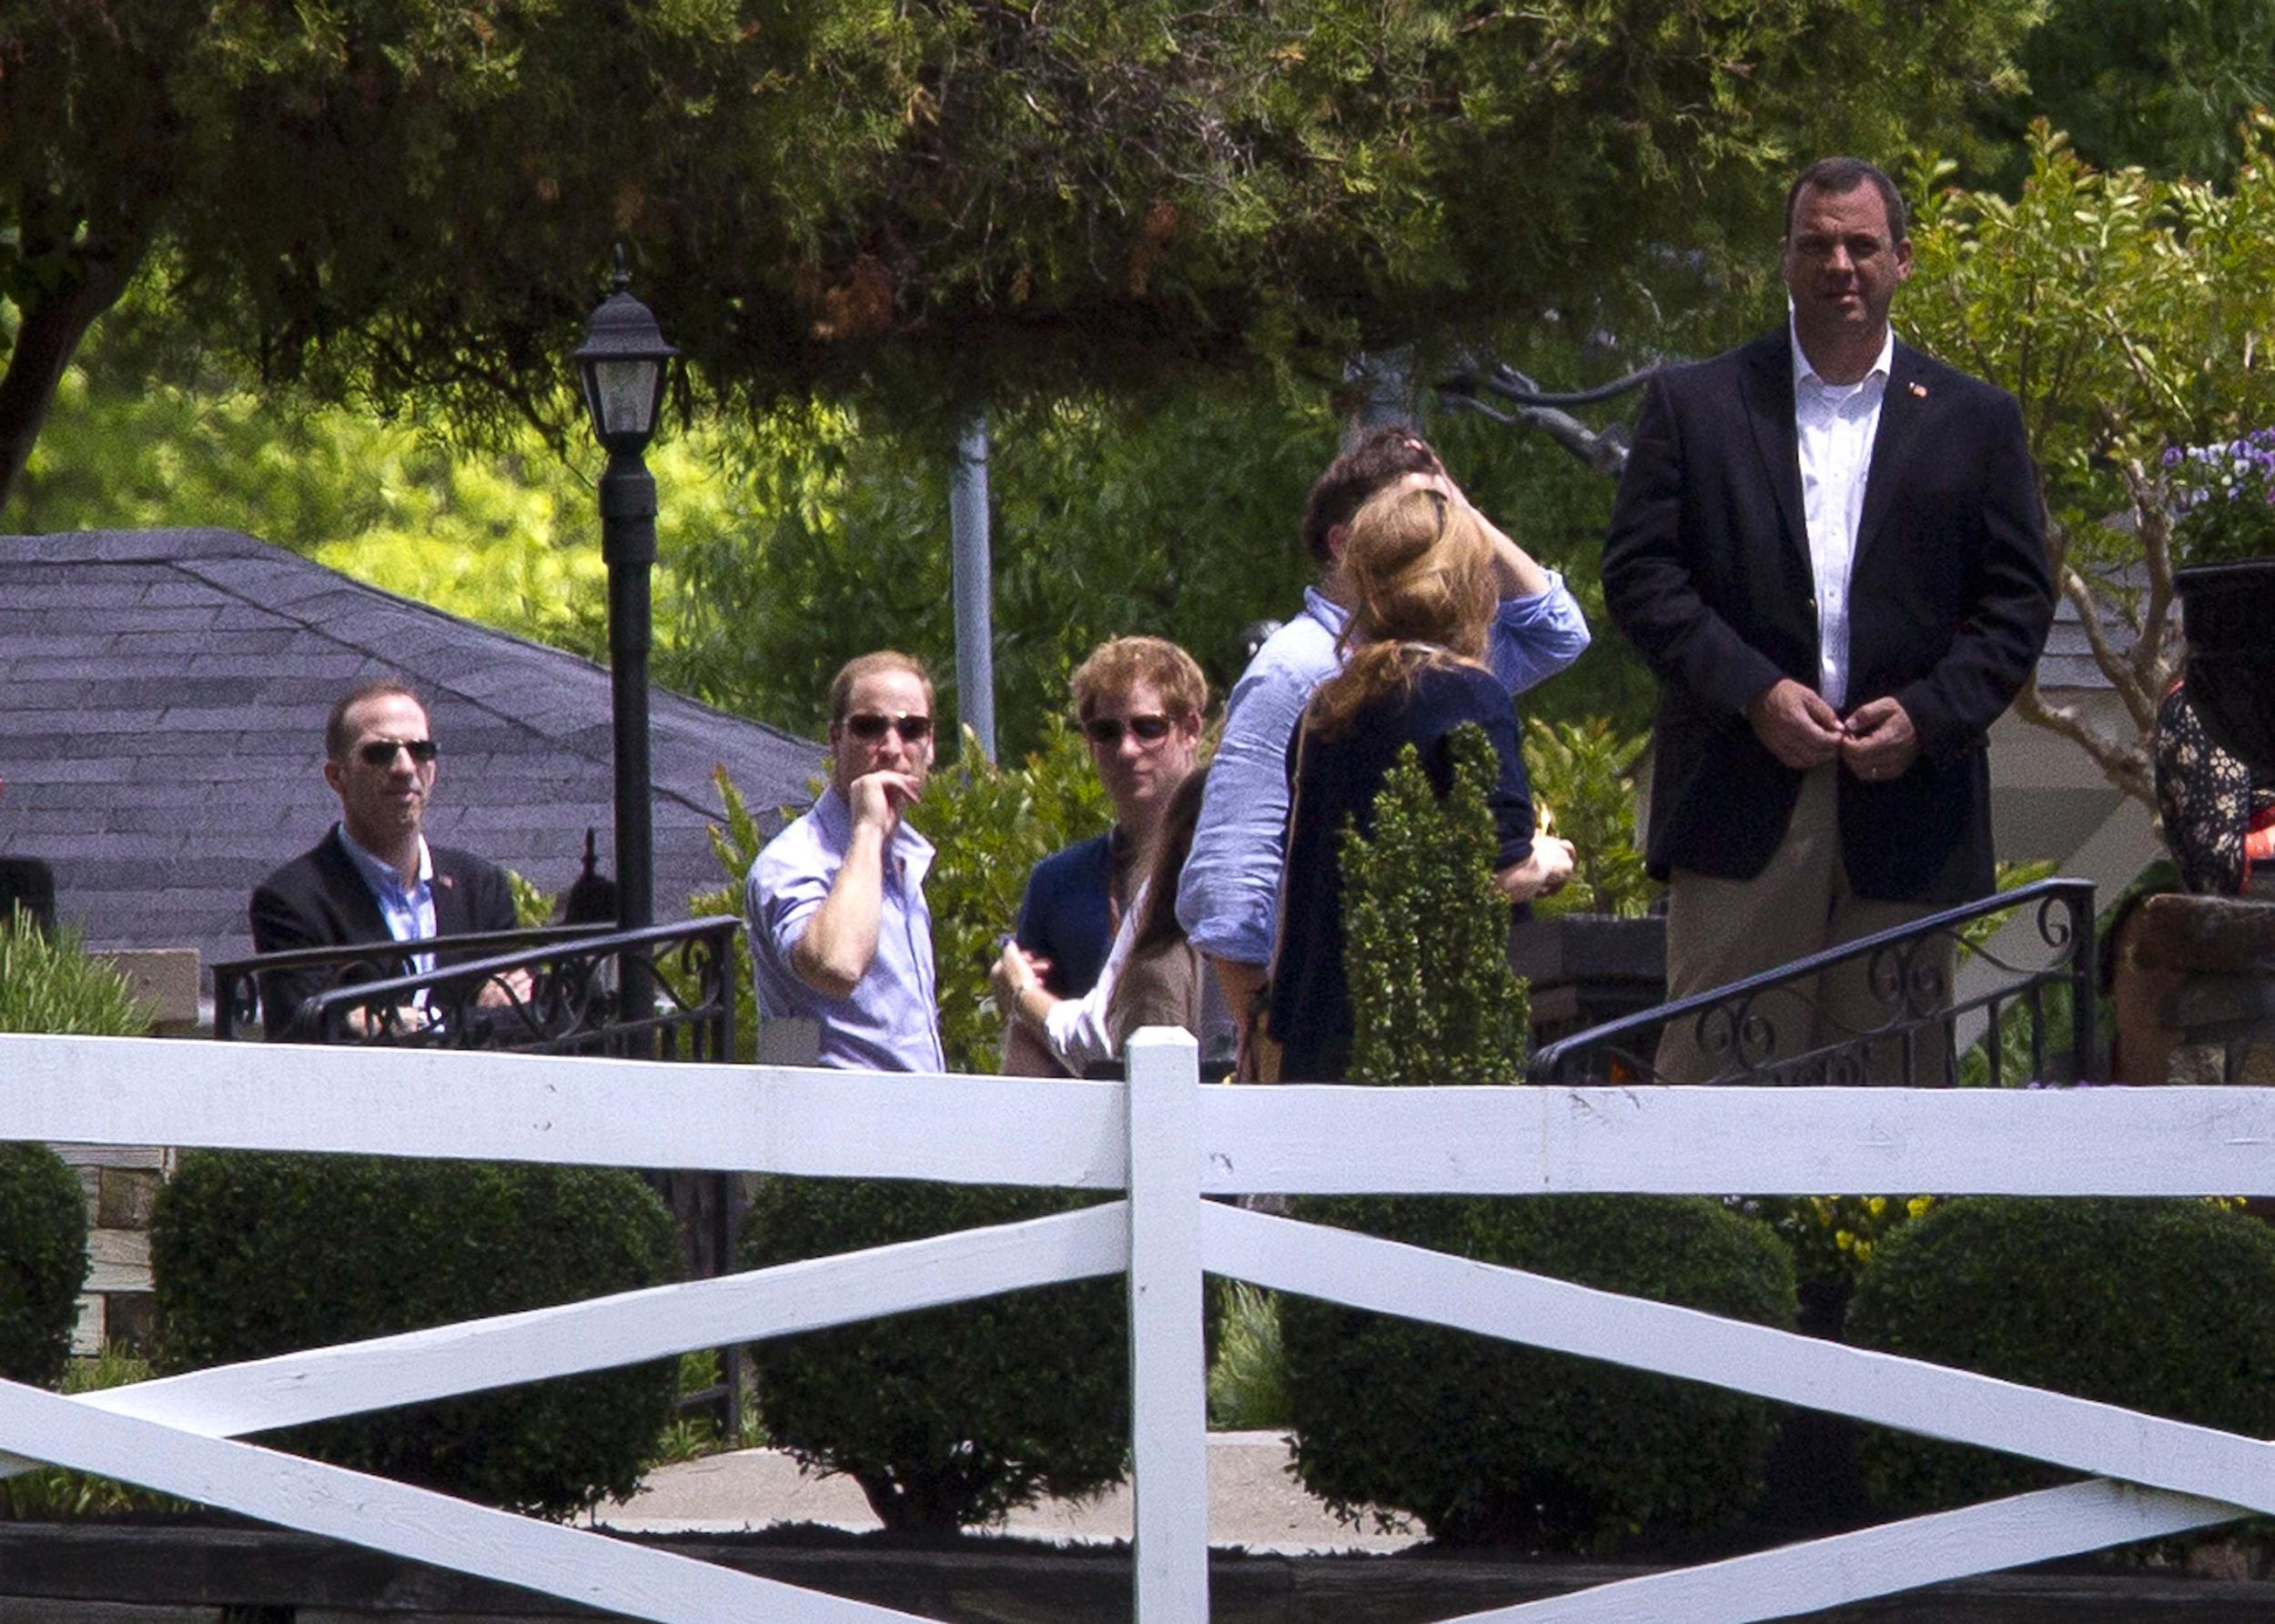 Image: British princes William and Harry arrive at Elvis Presley's Graceland in Memphis